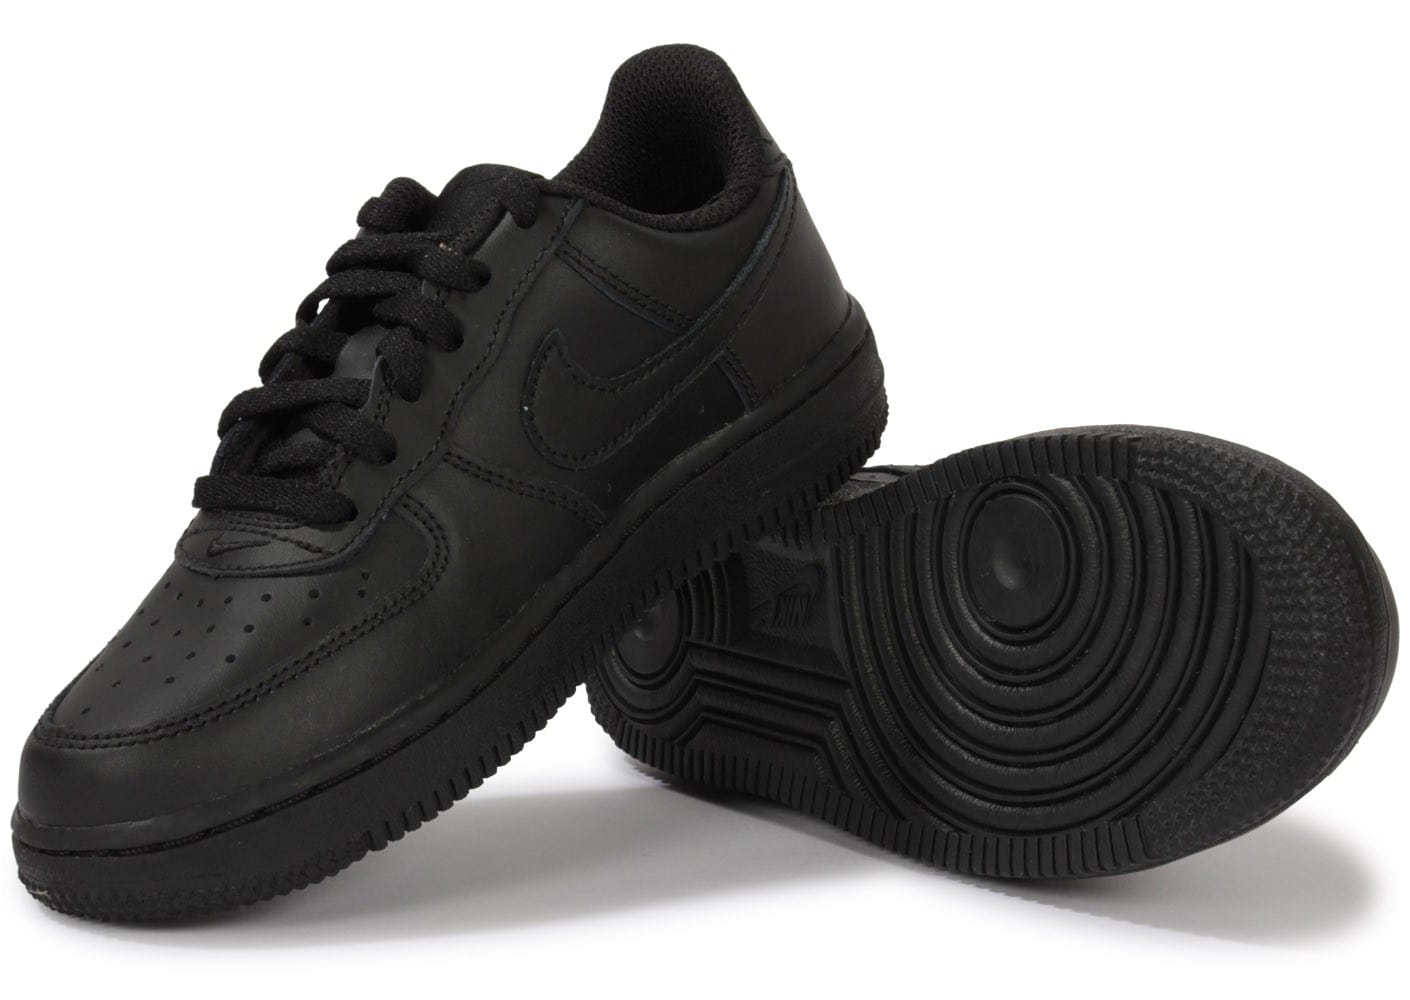 nike air force 1 enfant noire chaussures chaussures chausport. Black Bedroom Furniture Sets. Home Design Ideas